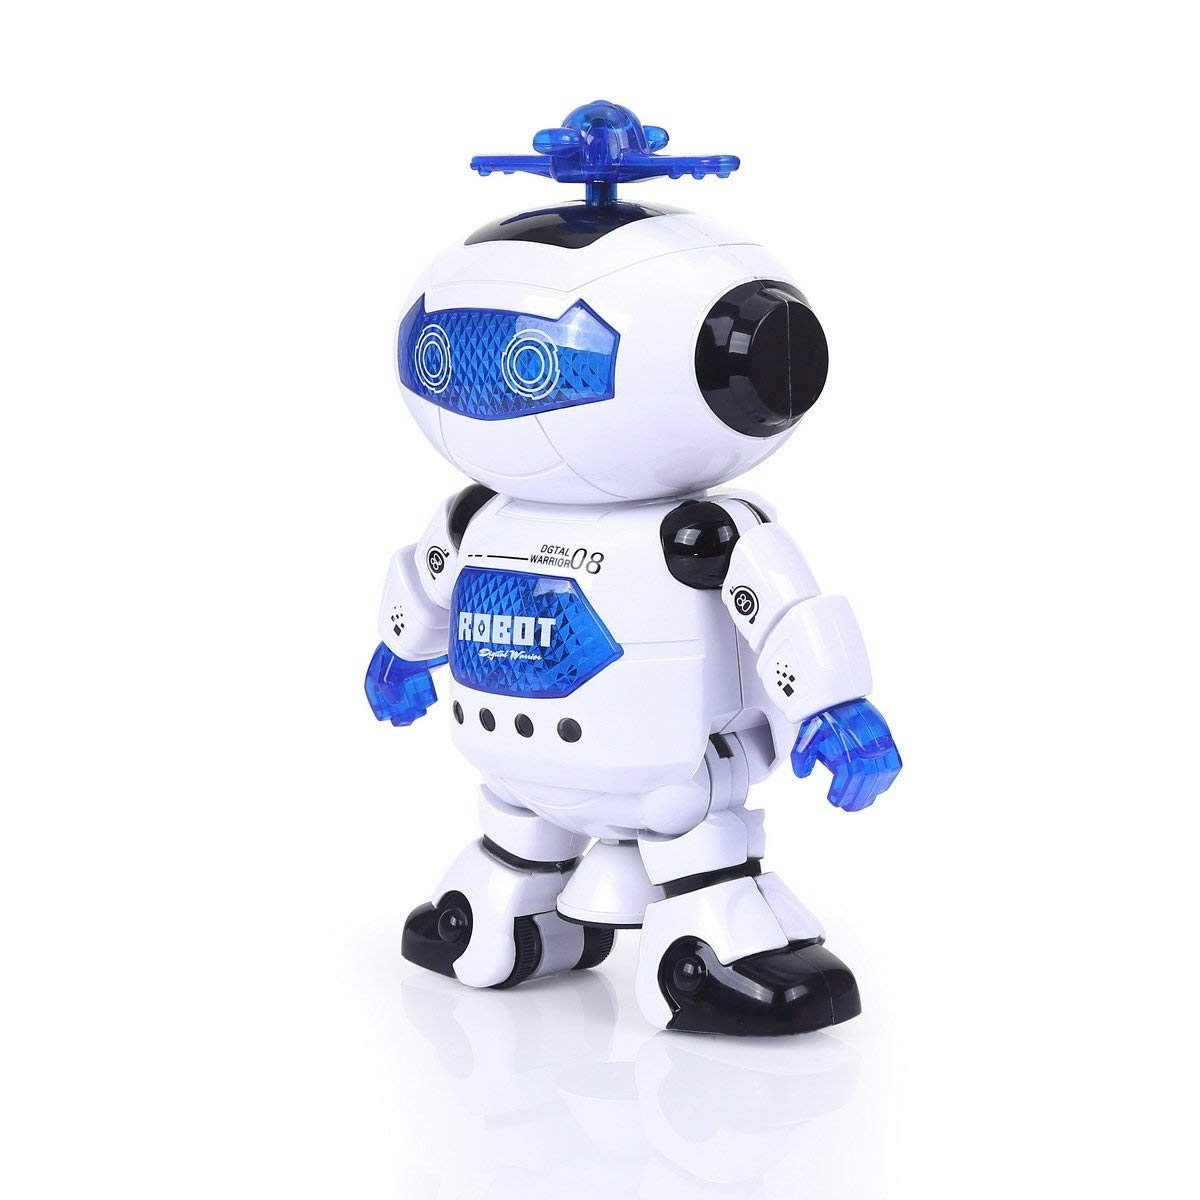 Alagoo Electronic Toy Robot Walking Dancing Singing Robot with Musical and Colorful Flashing Lights 360/° Body Spinning Robot Toy Gift for Kids Girls Boys Red